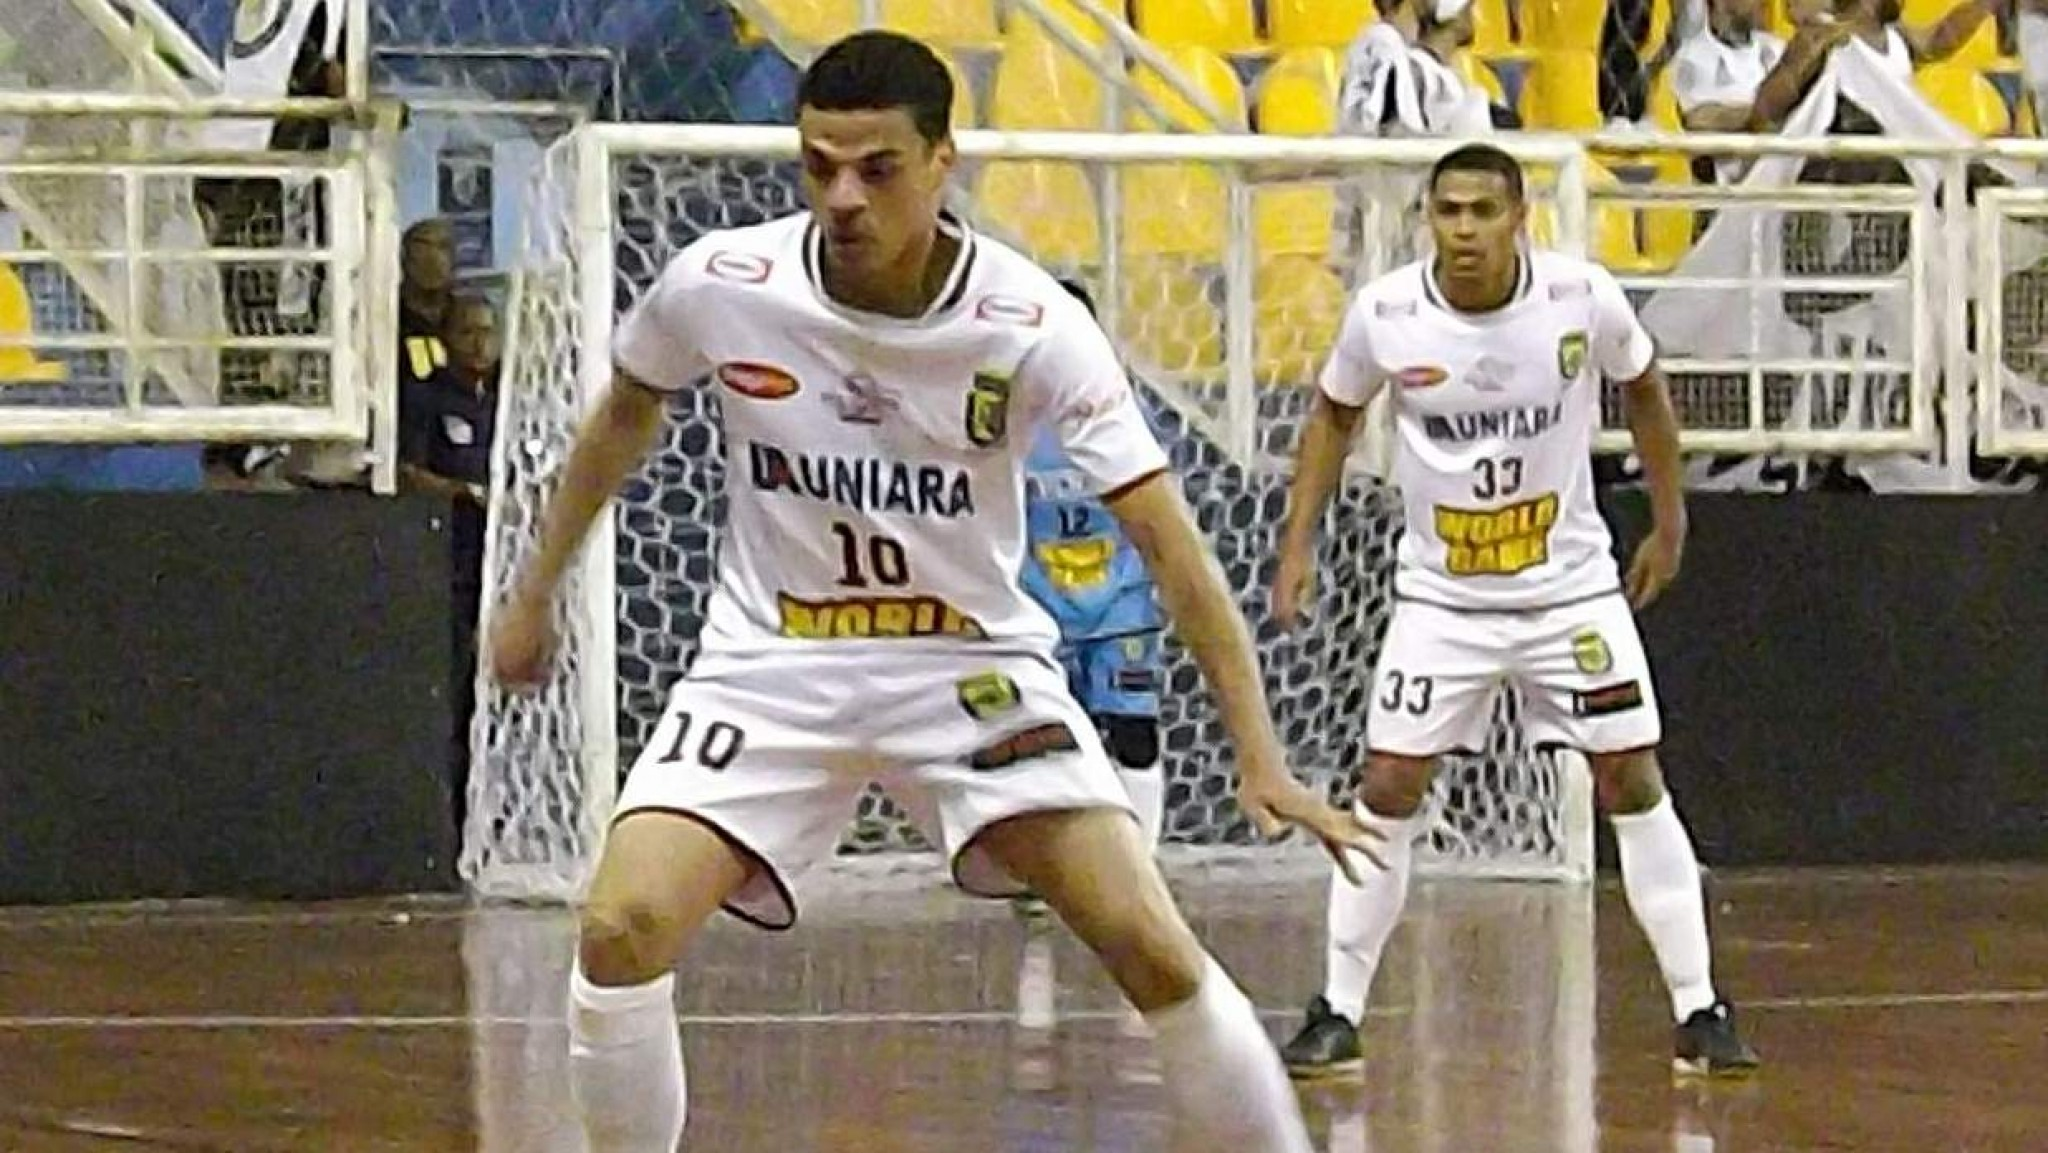 Futsal de Araraquara segue imbatível na Liga do Interior